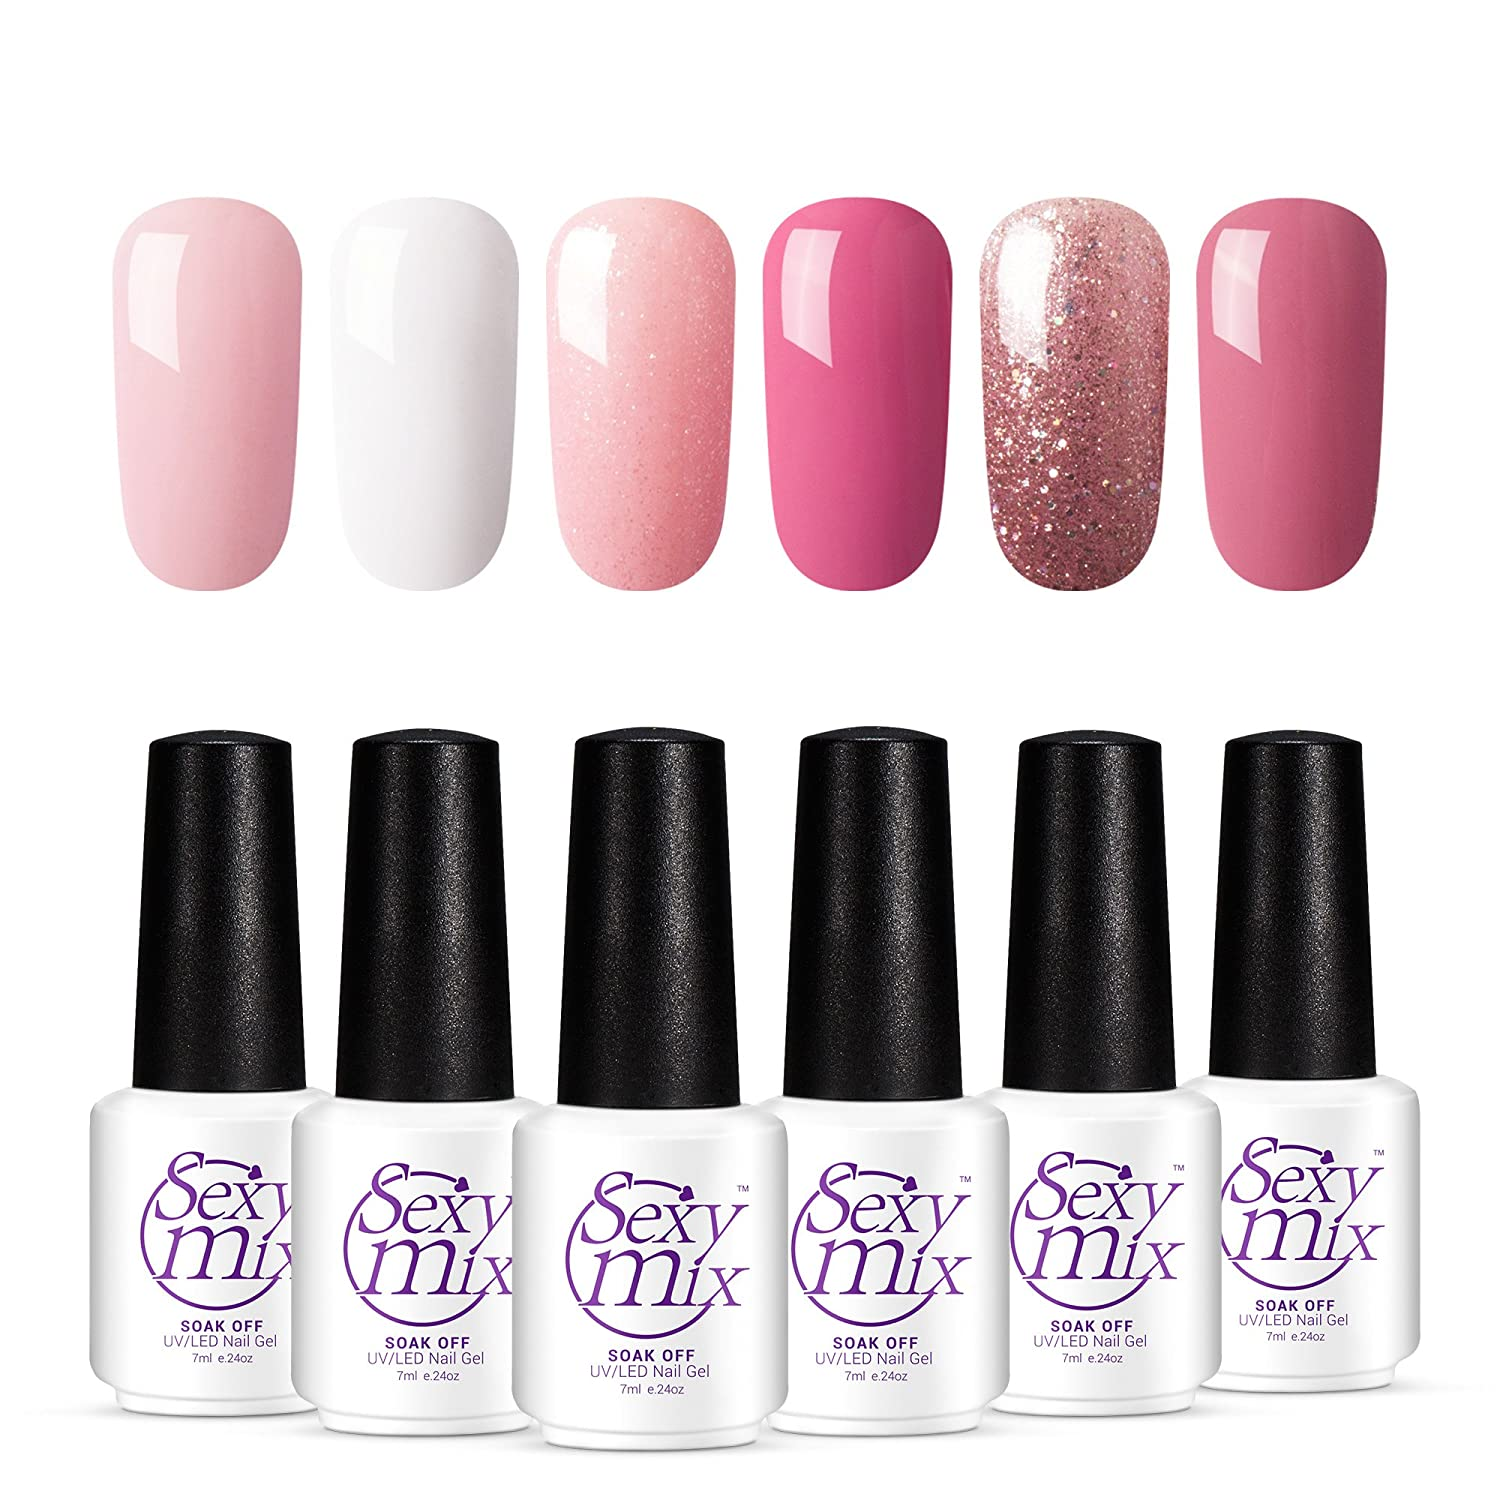 Amazon.com: Nail Strengthening: Beauty & Personal Care